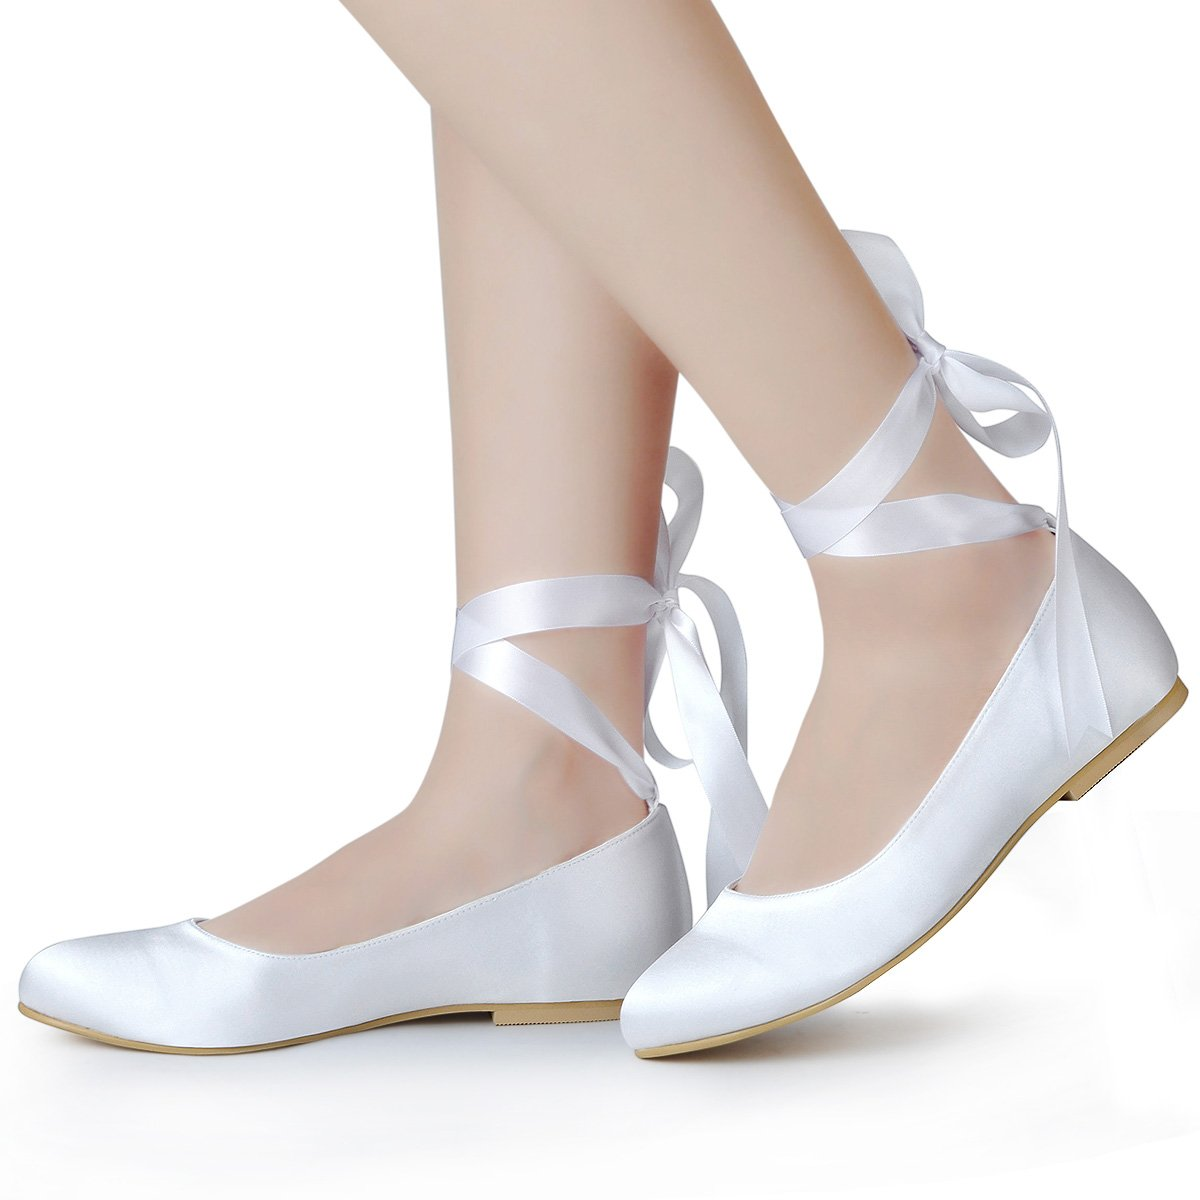 1920s Style Shoes ElegantPark Women Comfort Flats Closed Toe Ribbon Tie Satin Wedding Bridal Shoes $42.95 AT vintagedancer.com